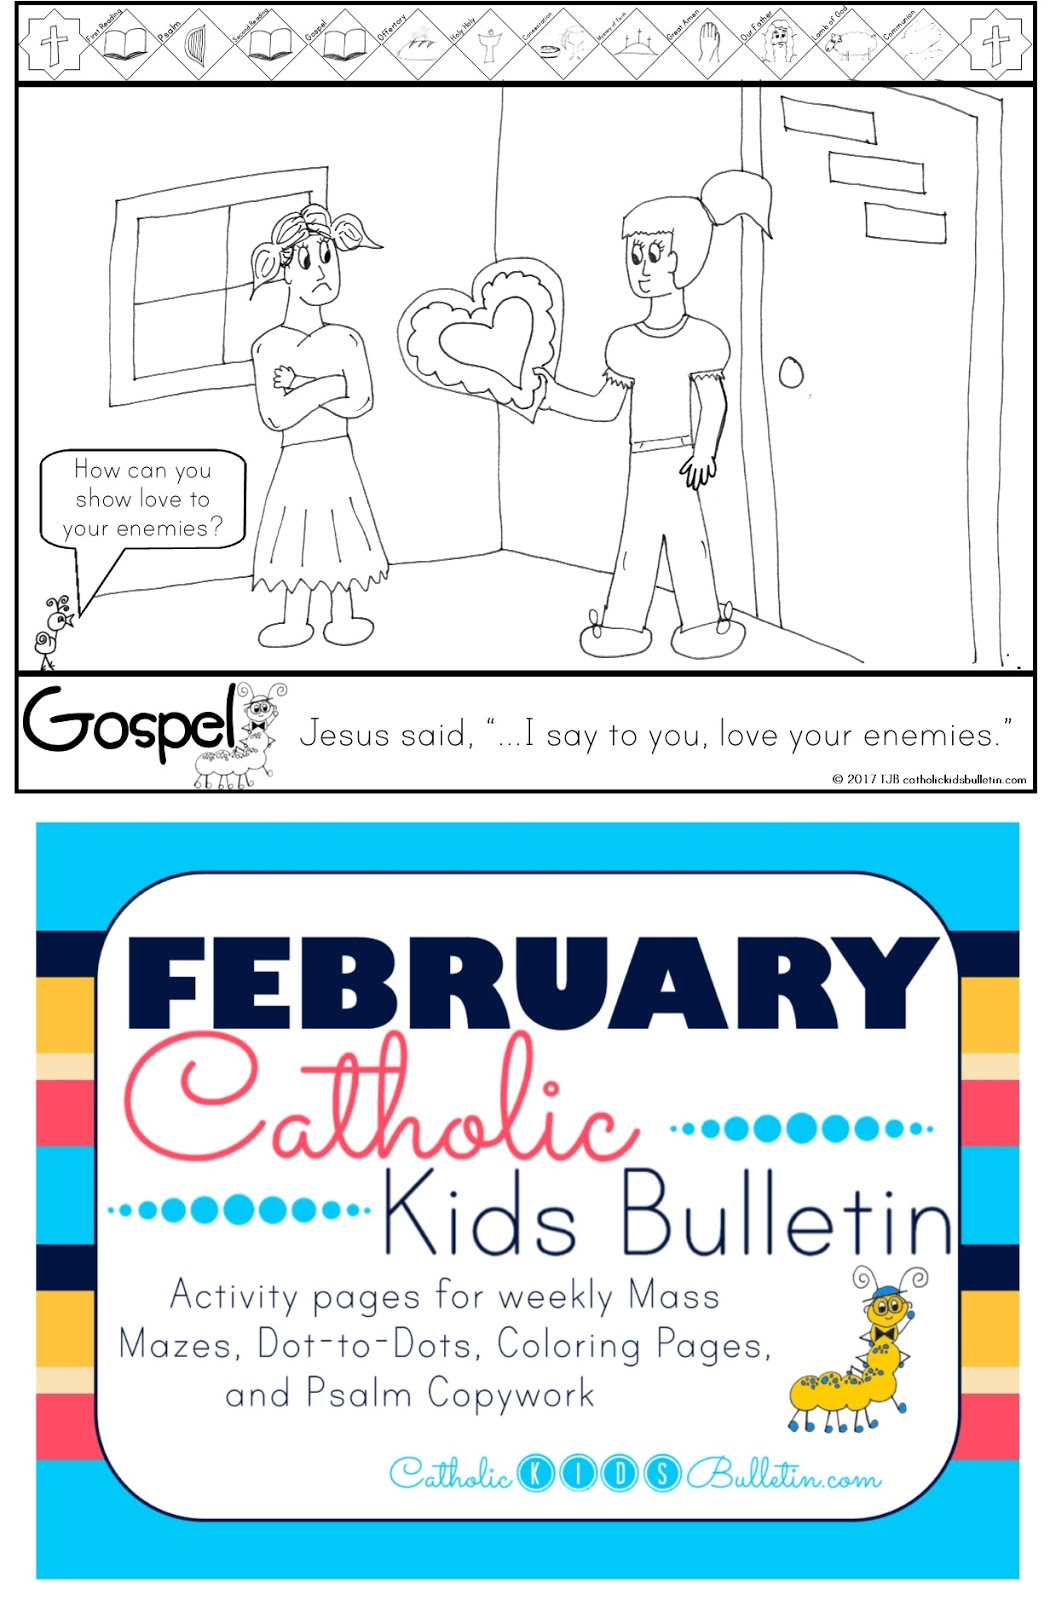 3 Kindness Catholic Kids Bulletin Coloring Page Matthew 5.38-48